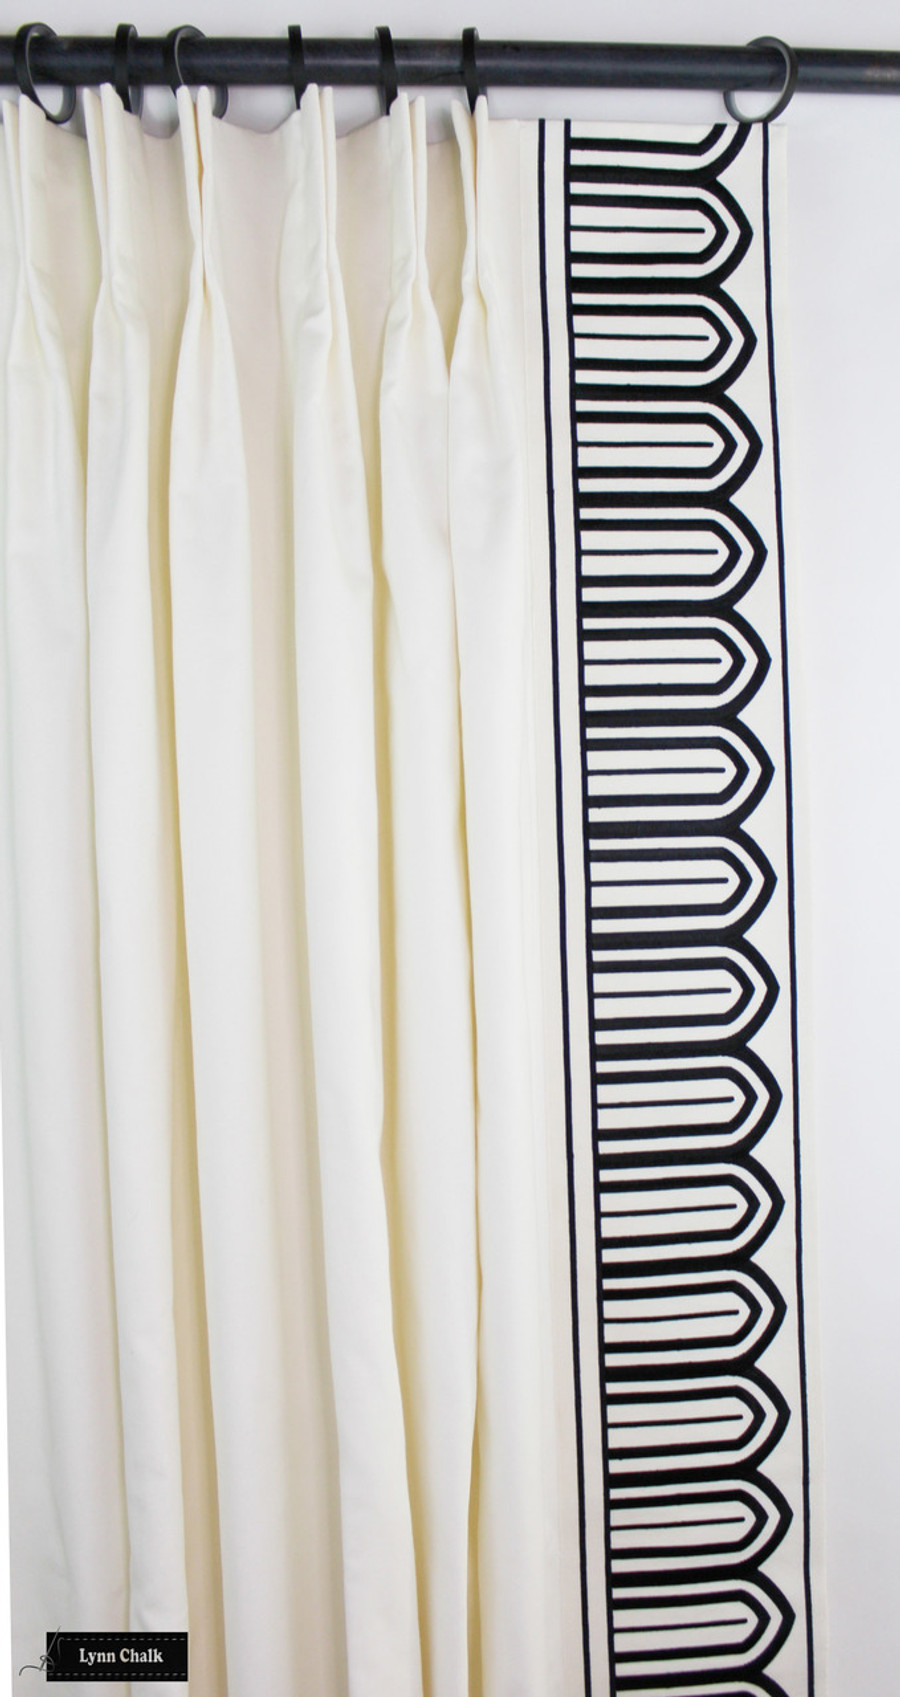 Custom Drapes in Schumacher Elliott in Cream 69492 with Arches 6 Inch Wide Trim Black on White 70770